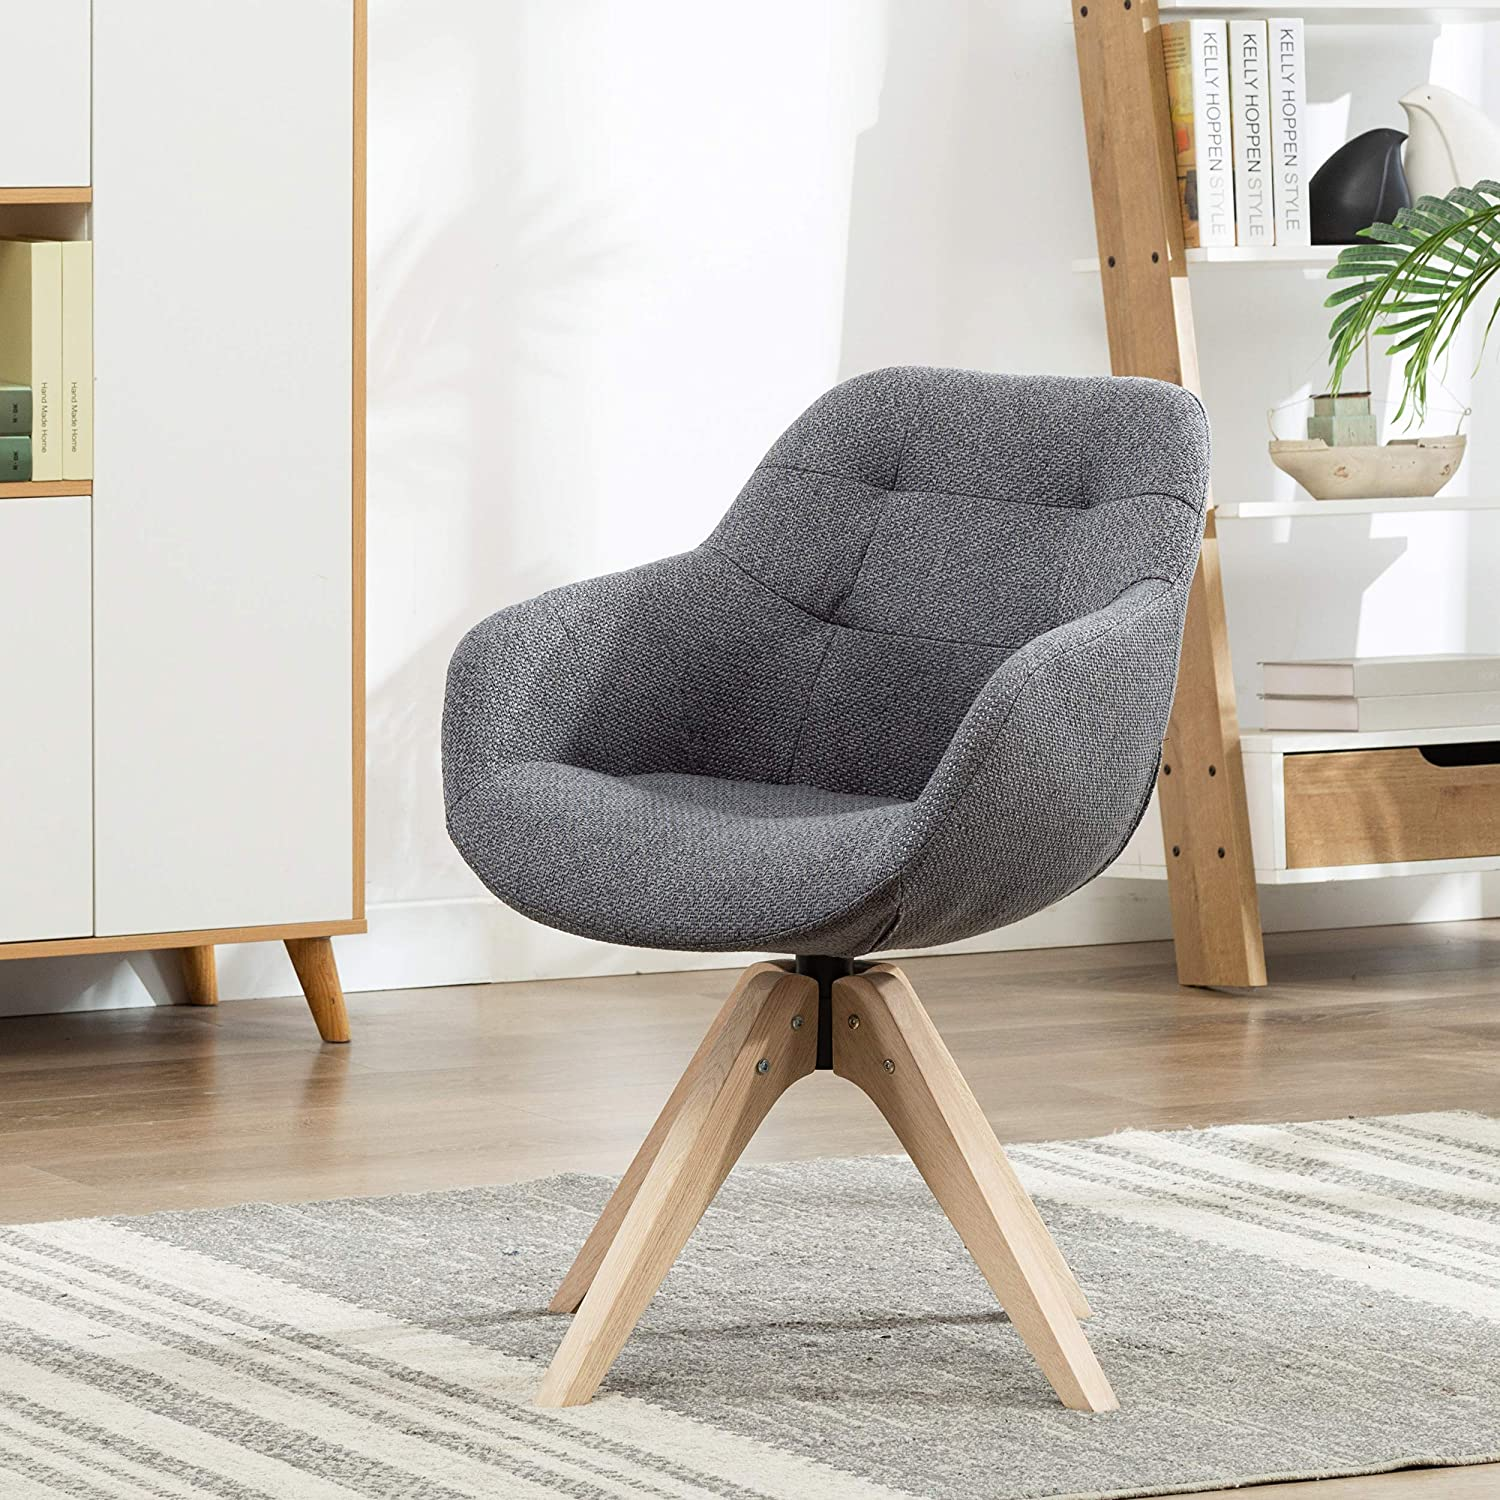 KINWELL Swivel Armchair Contemporary Chair Fabric It is very popular Dining Accent Super intense SALE